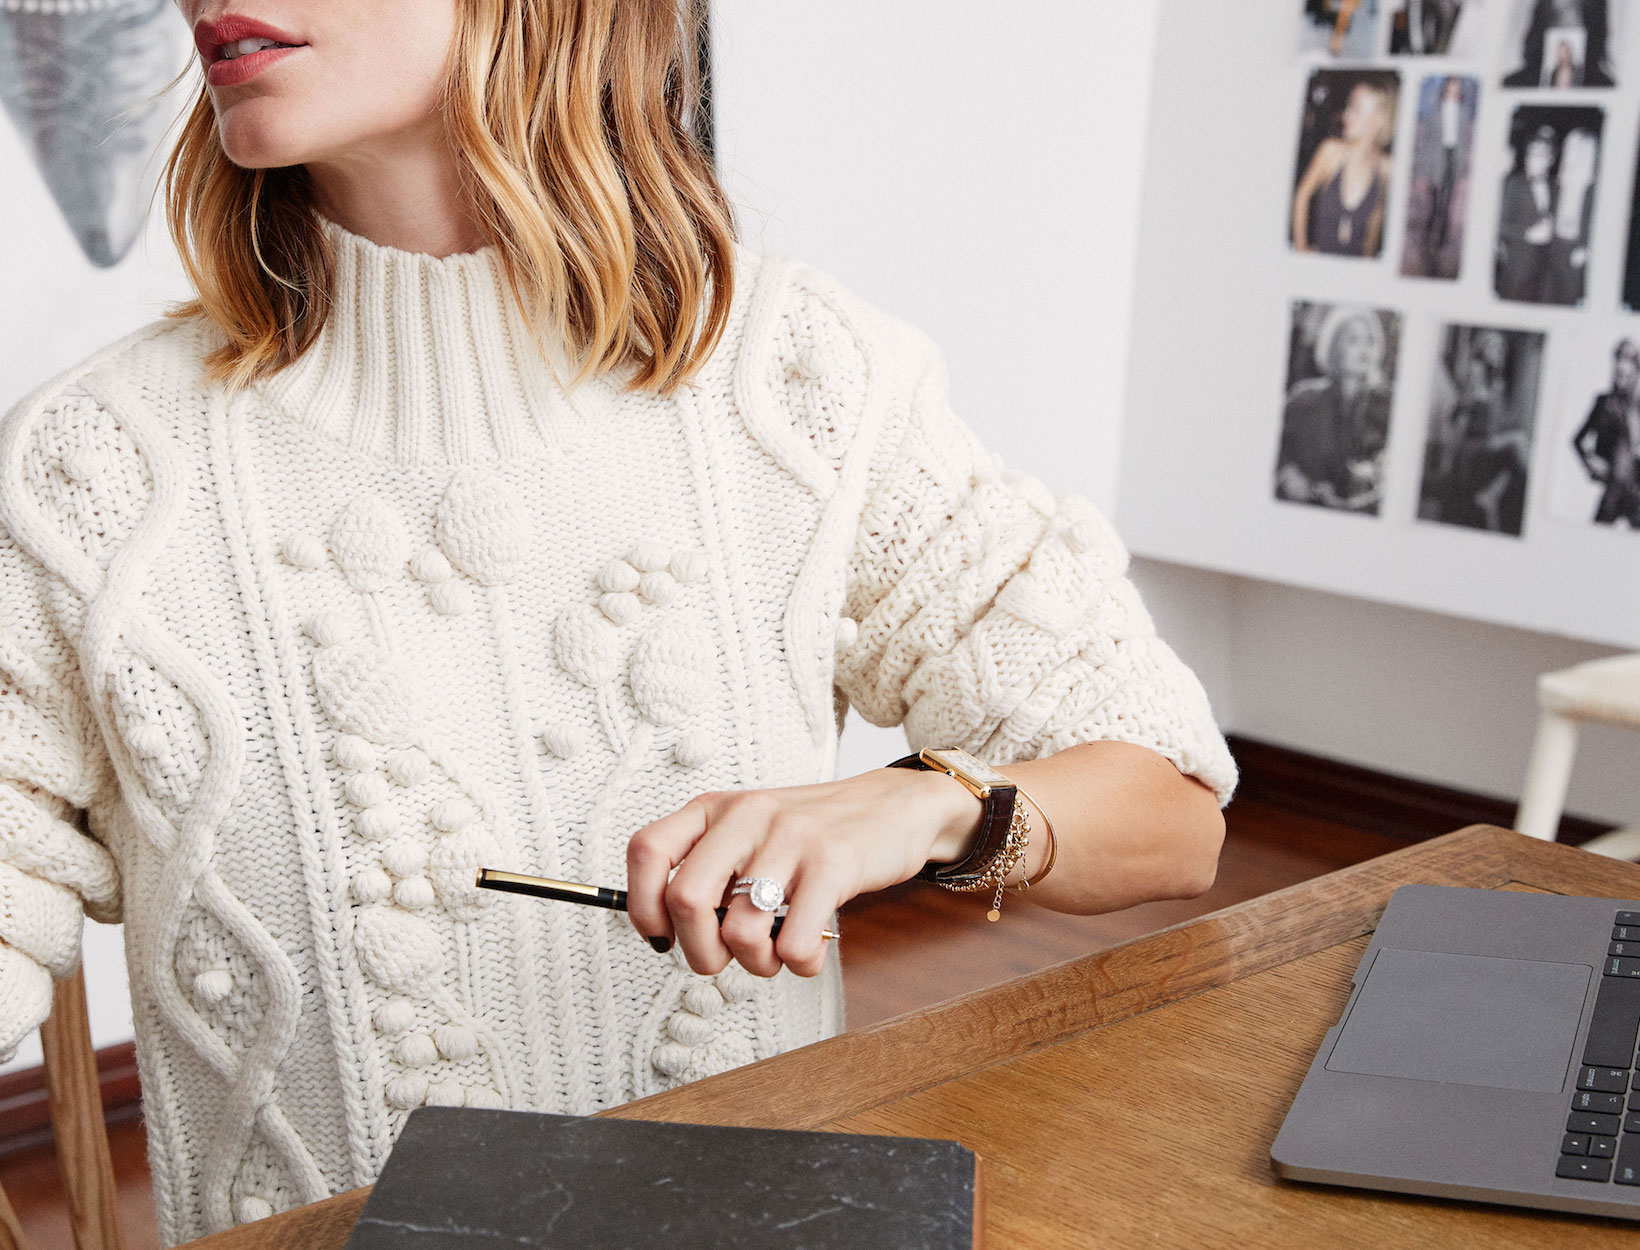 Woman in white sweater working at computer